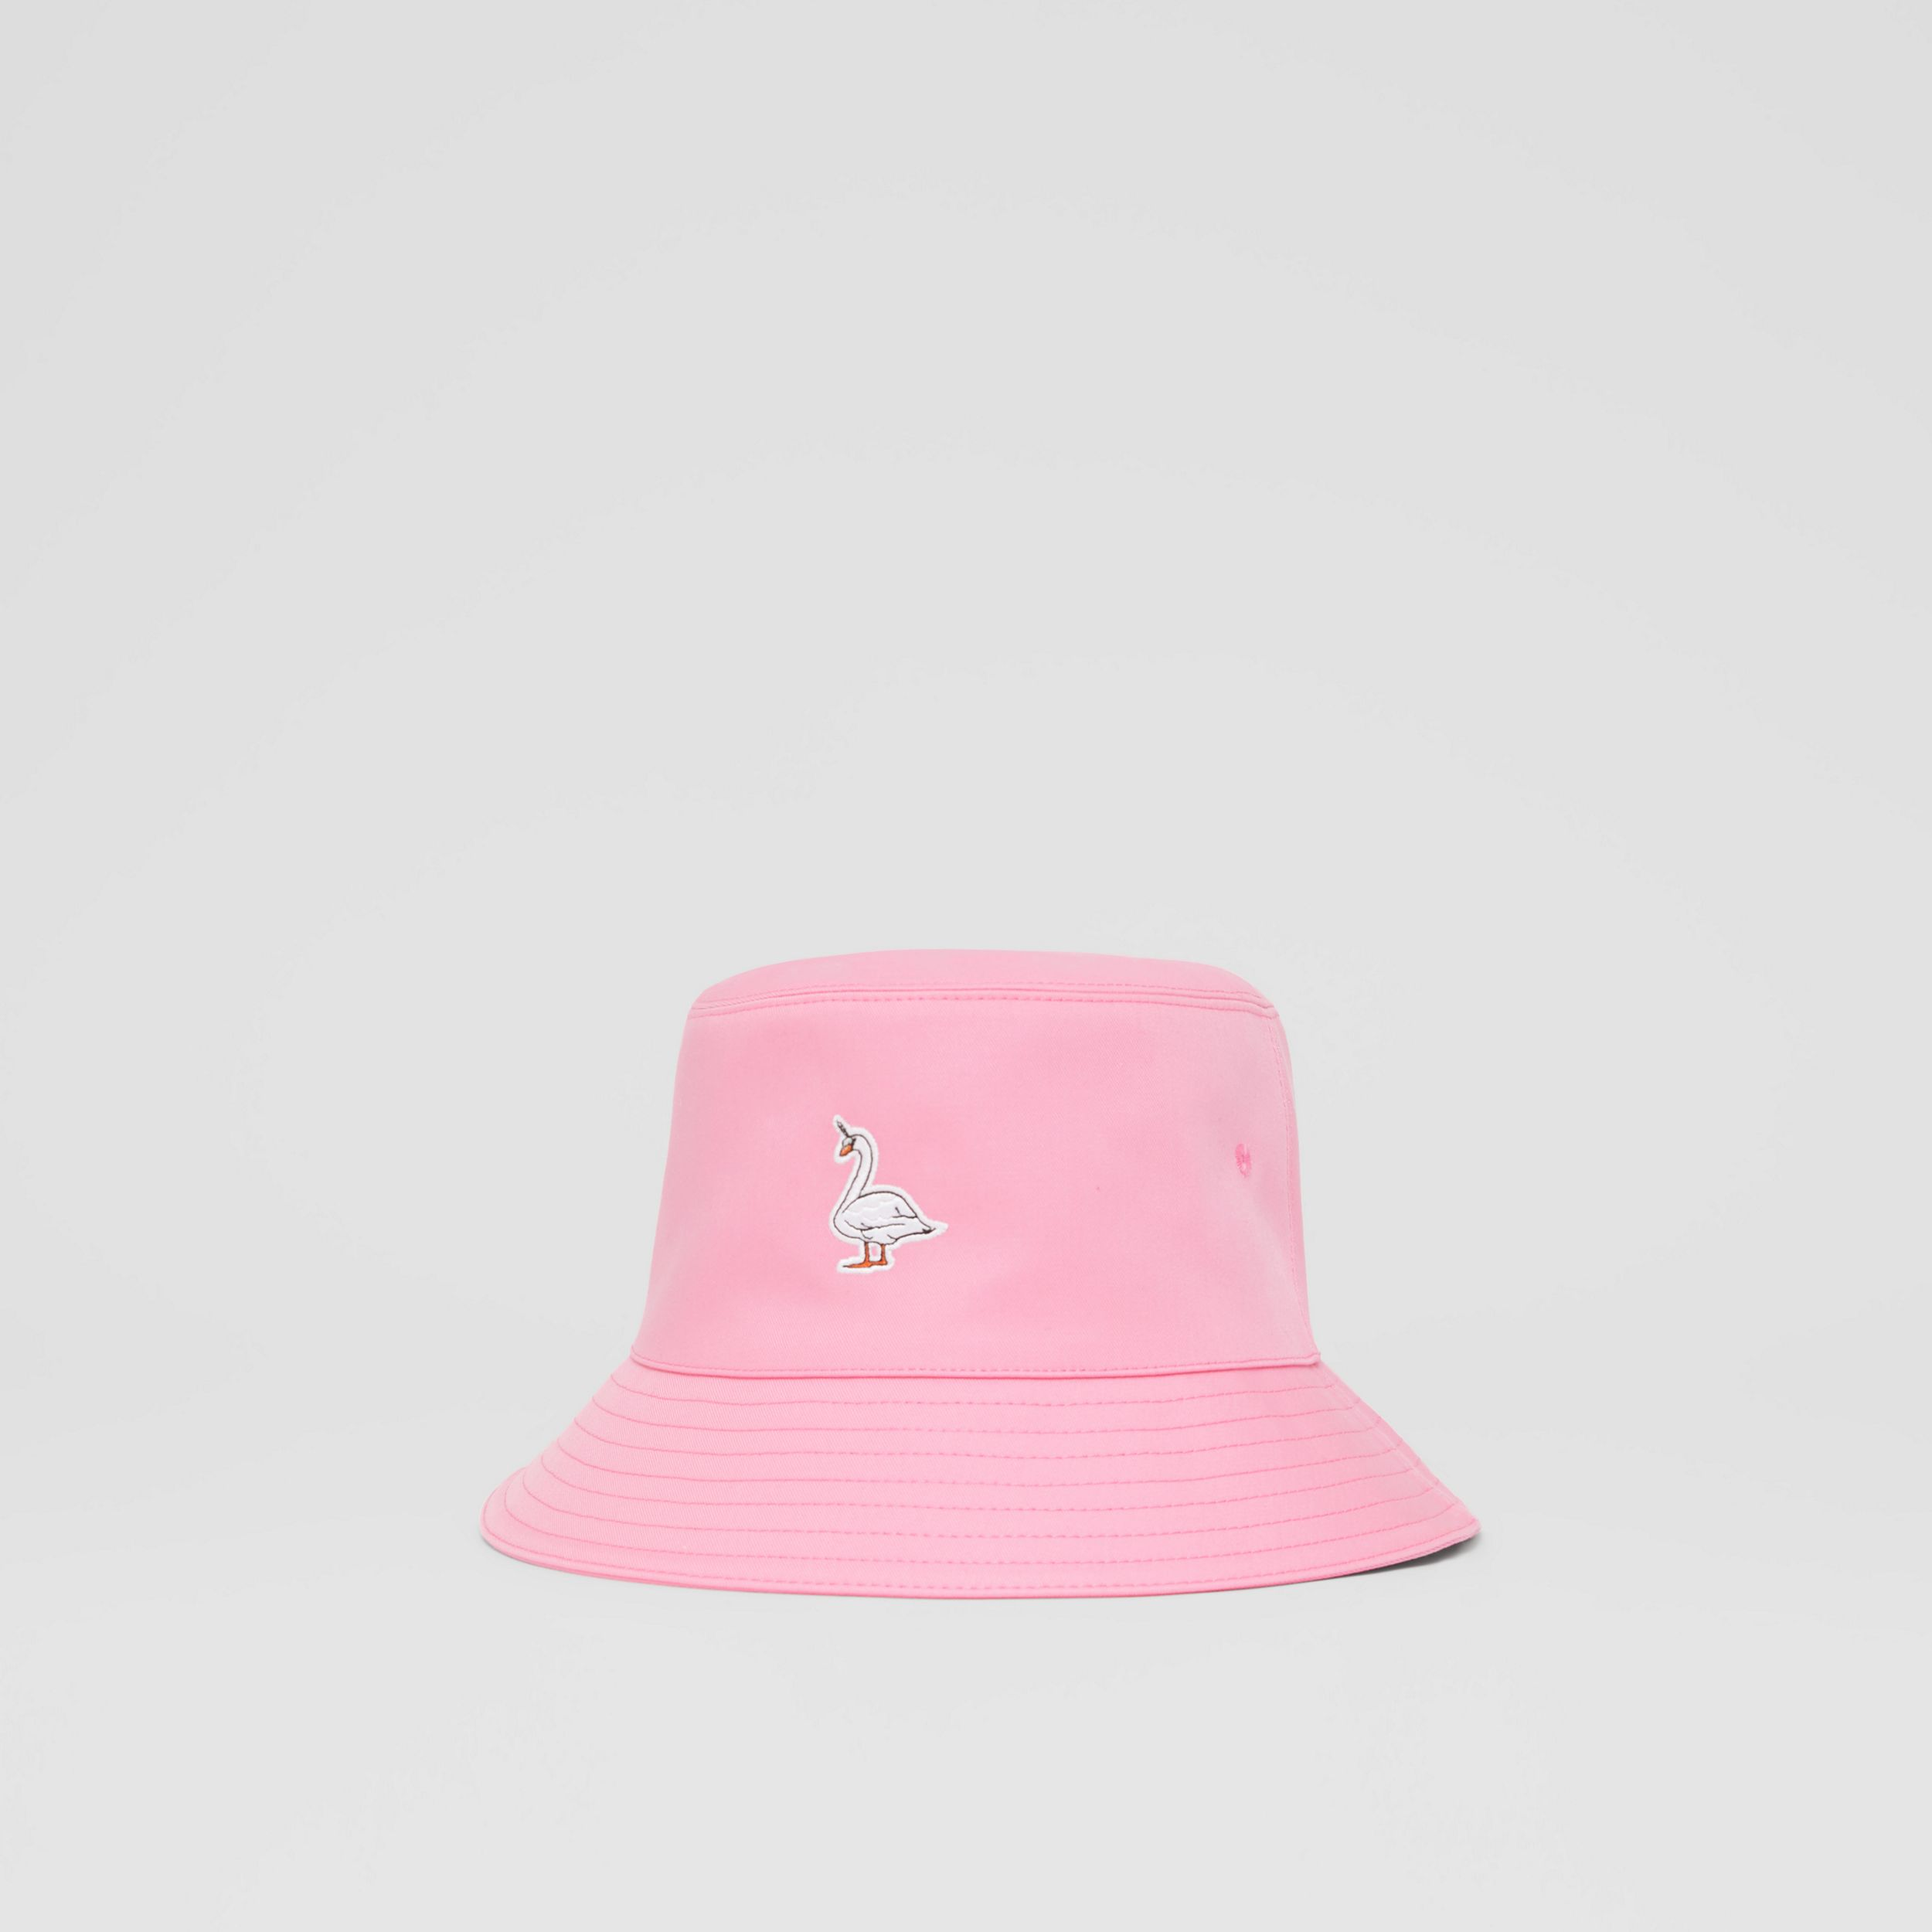 Swan Appliqué Cotton Twill Bucket Hat in Bubblegum Pink | Burberry United States - 4